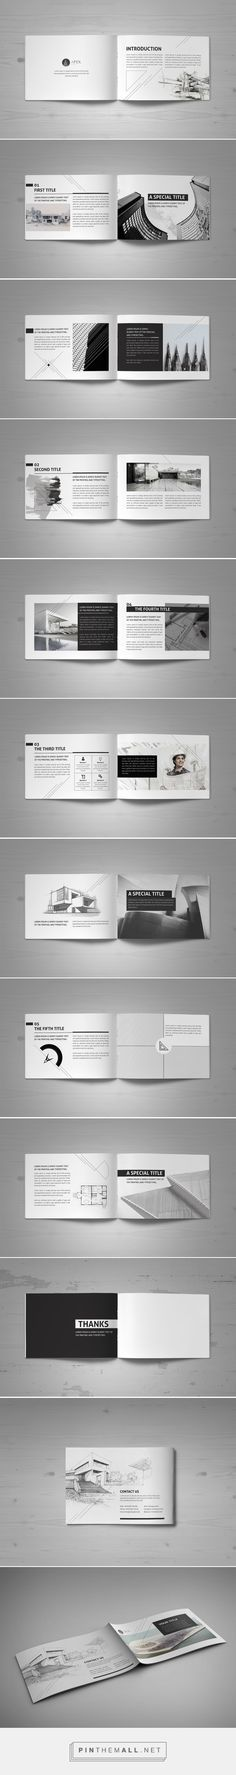 Minimal Modern Black & White Architecture Brochure by Mohammed Al Gharabli